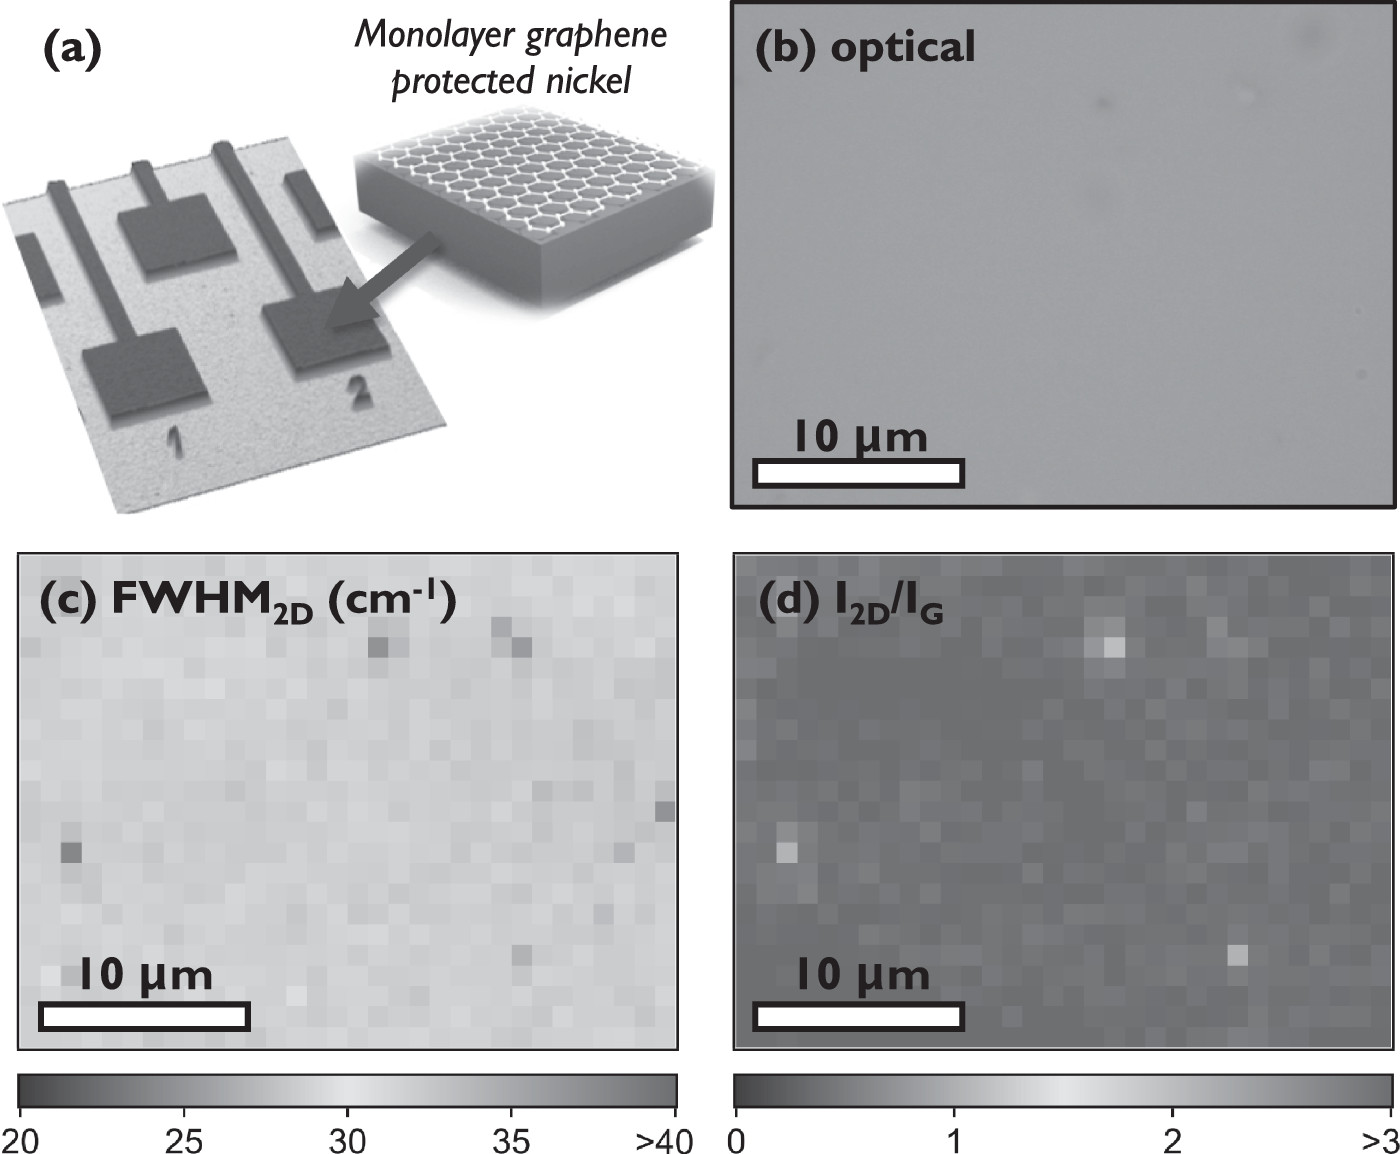 Protecting nickel with graphene spin-filtering membranes: A single